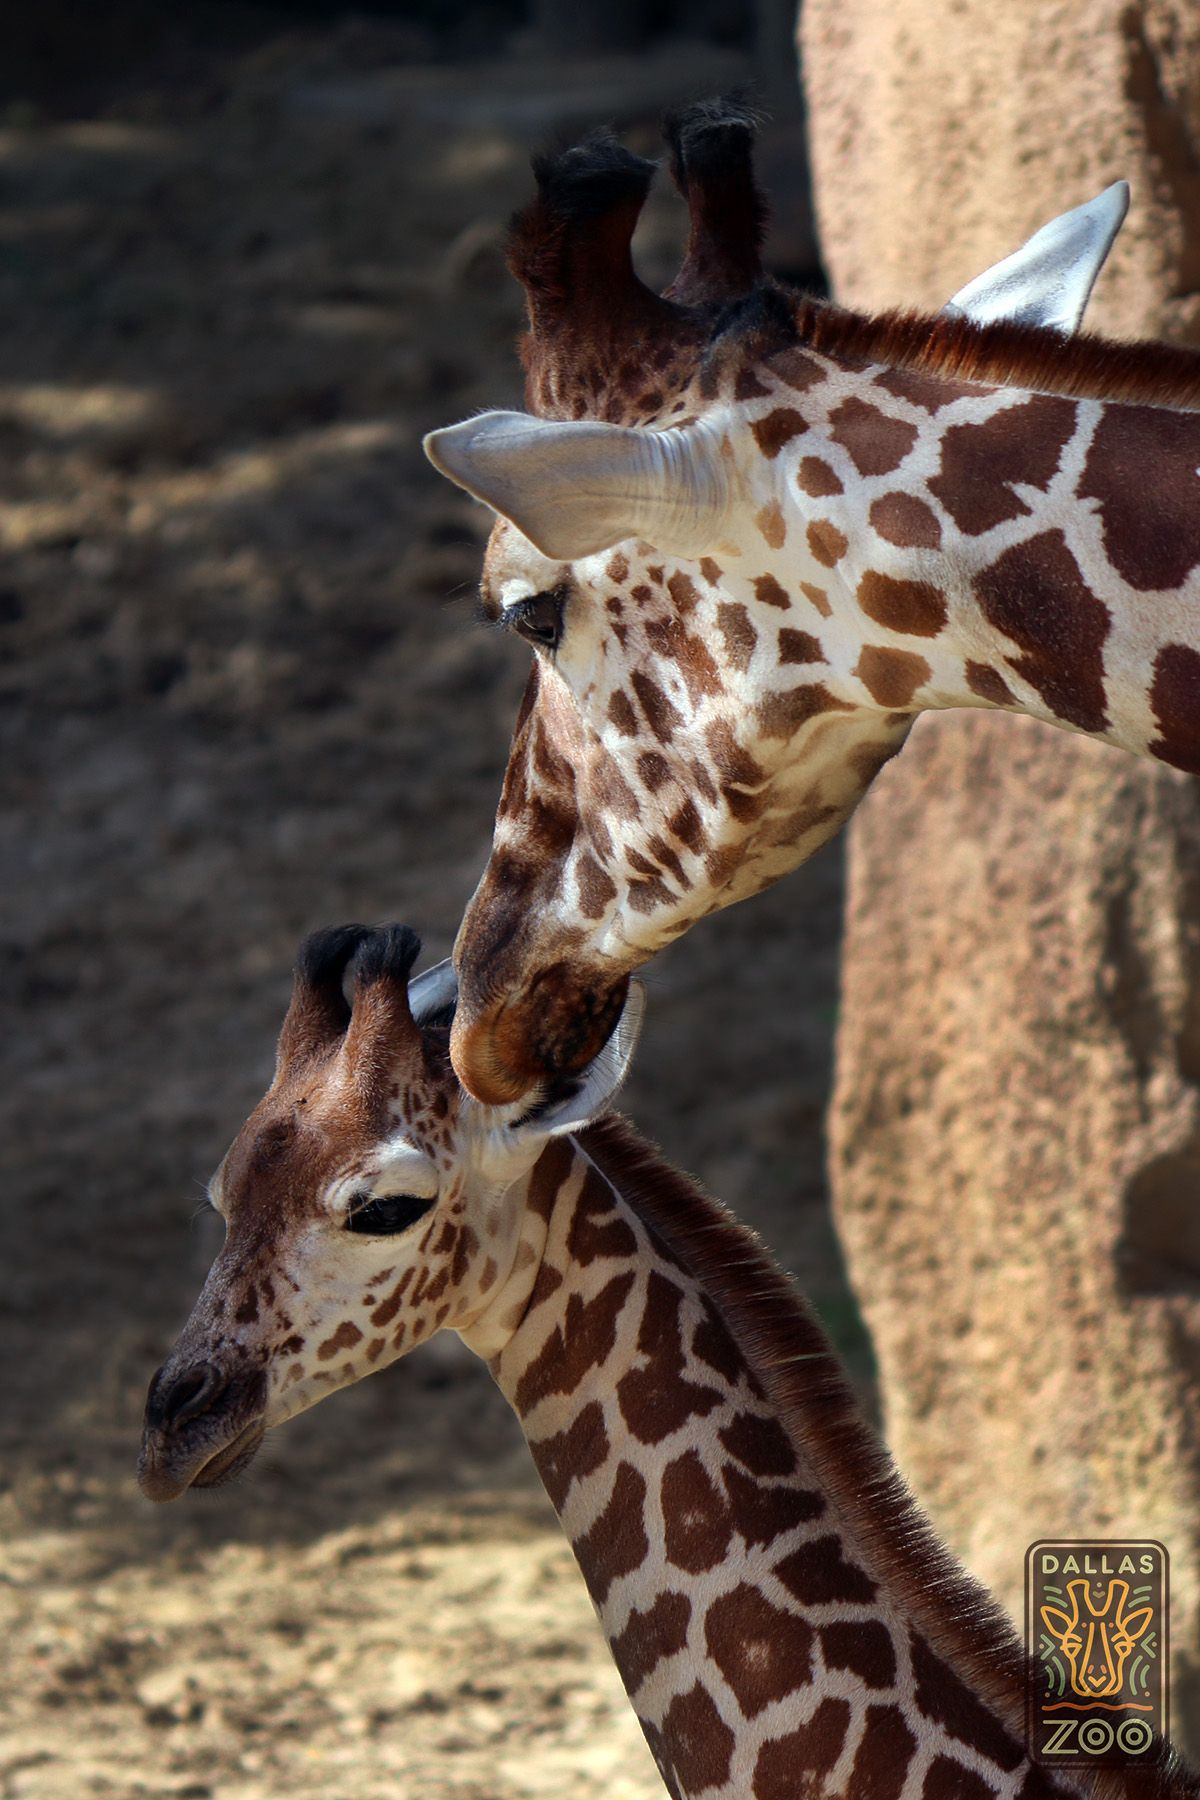 Kipenzi meets her older sister Jamie. The two gals get along beautifully.